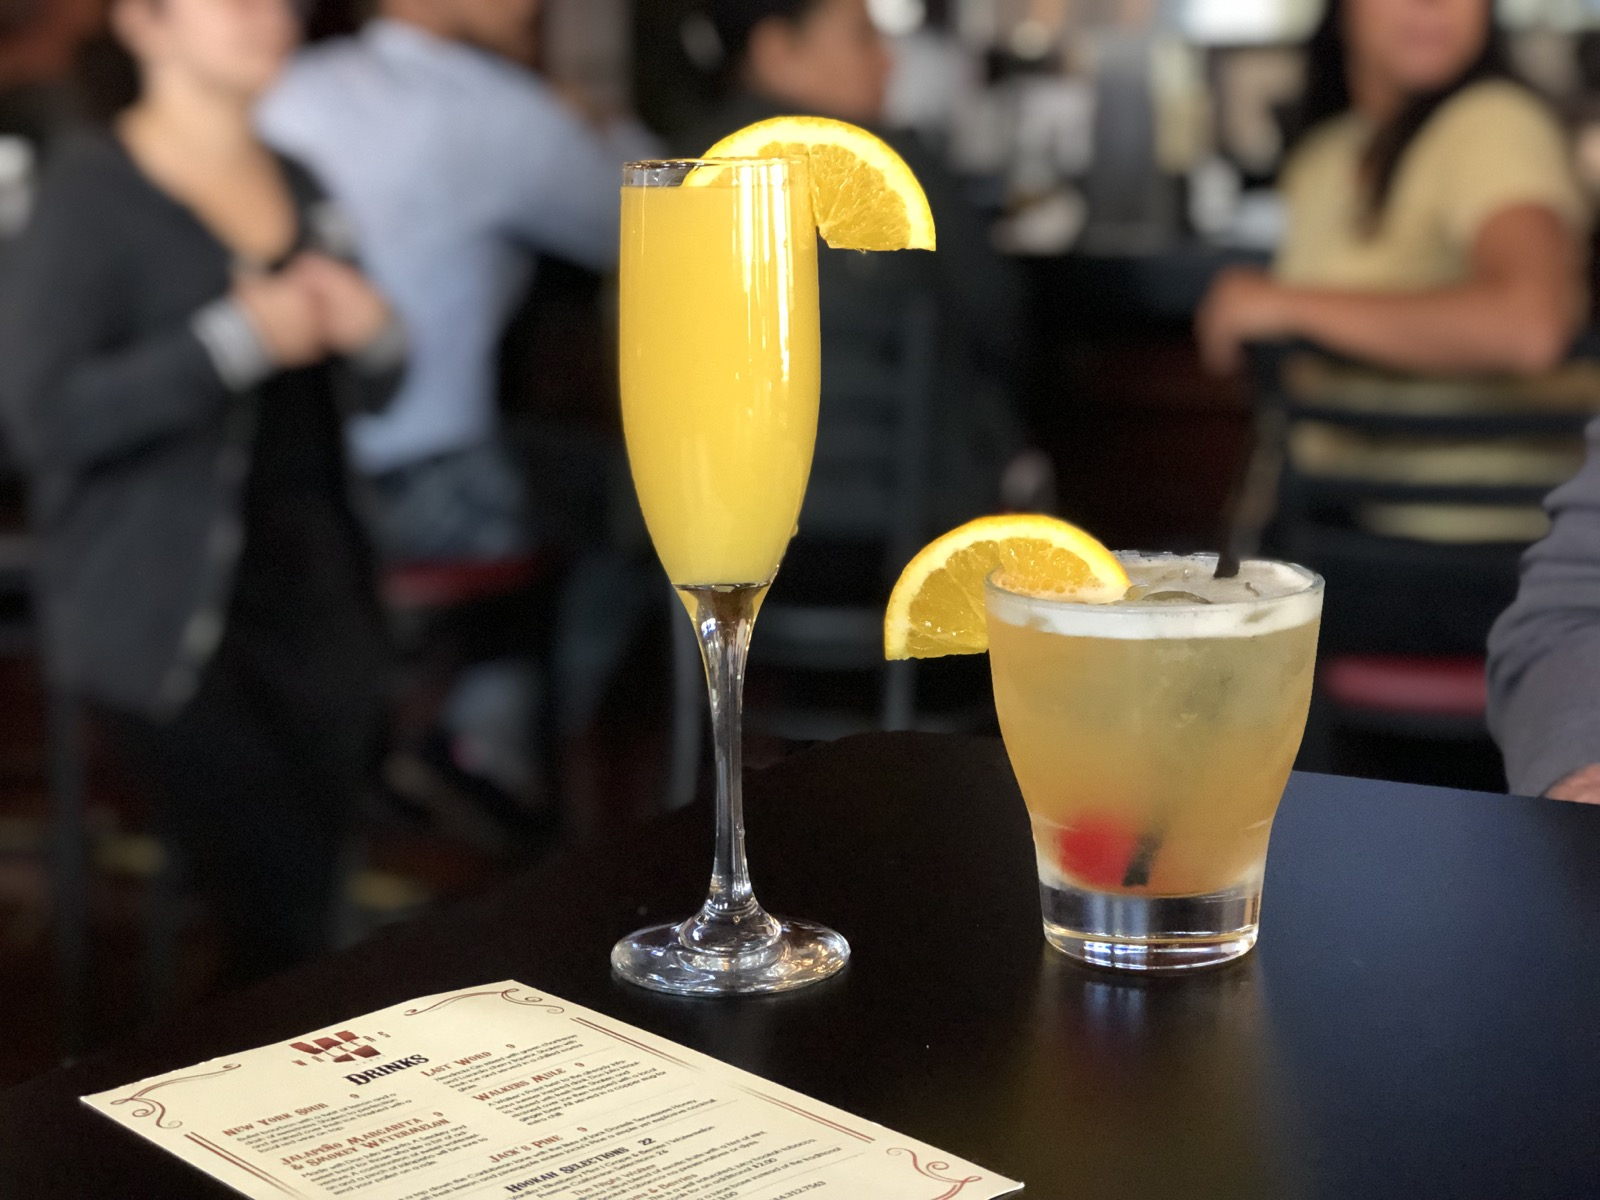 Walker's Lounge offers laid back vibe with cocktails, brunch